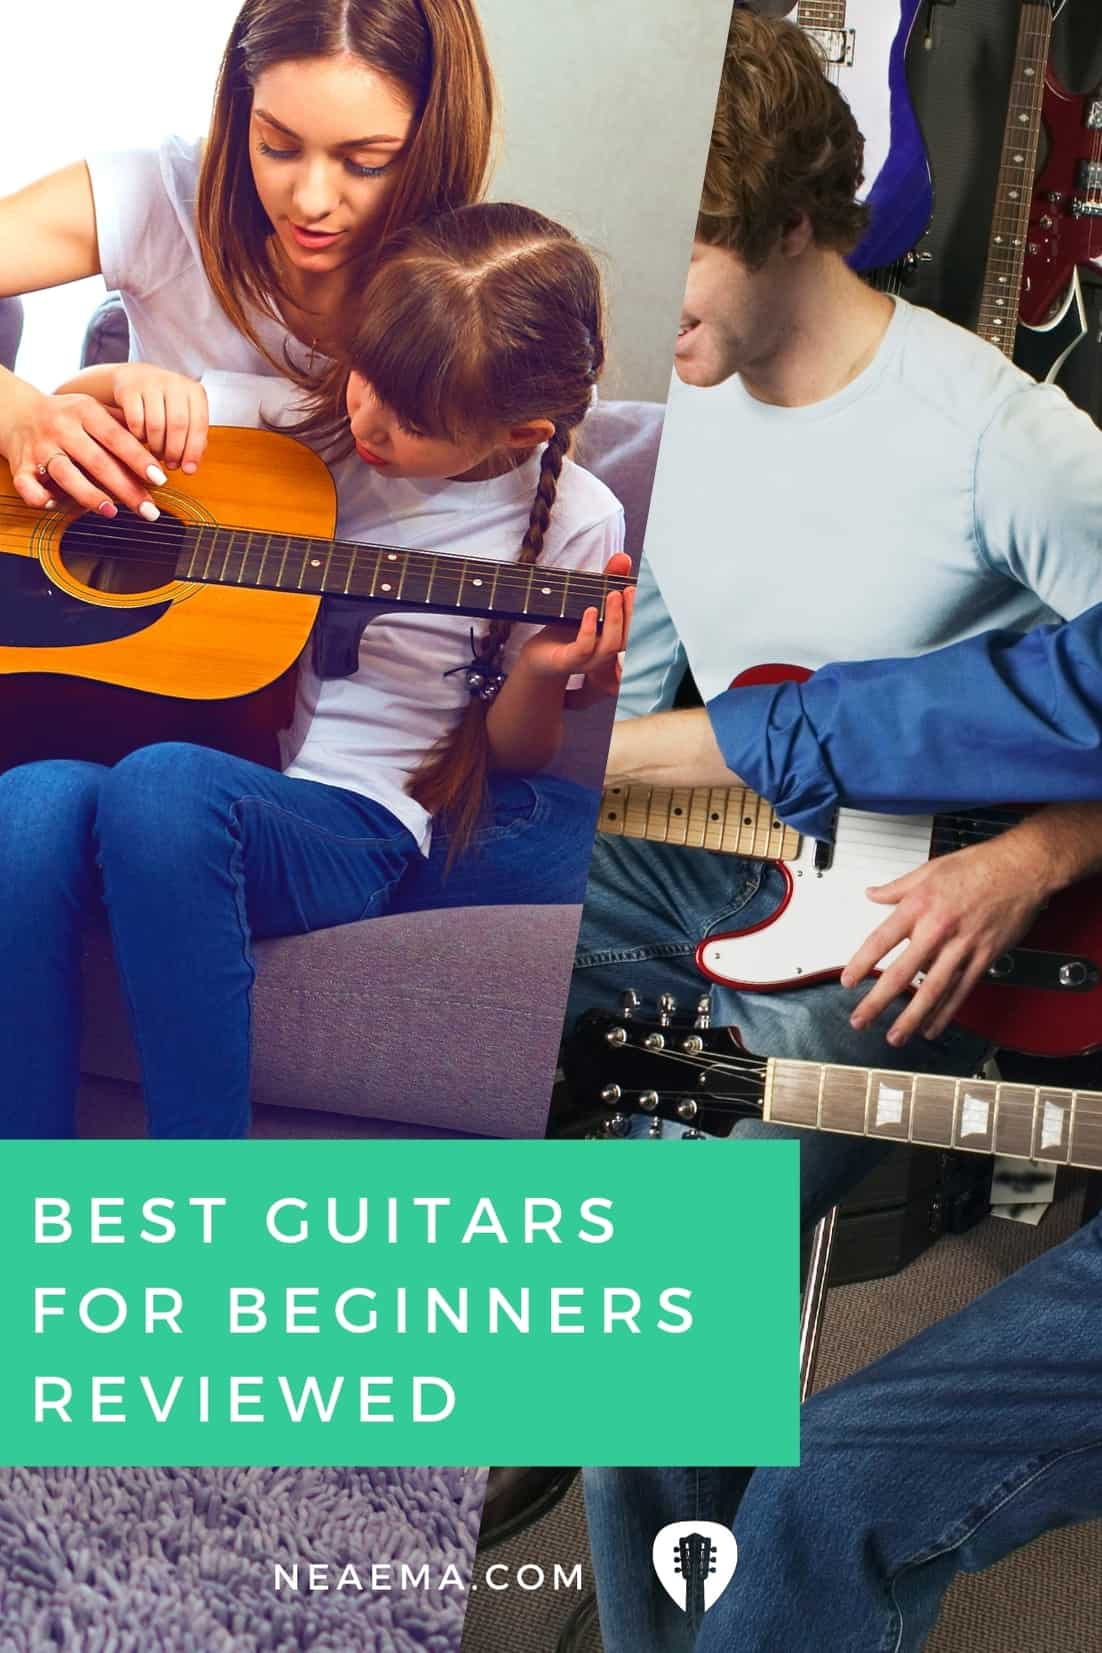 Best guitars for beginners reviewed